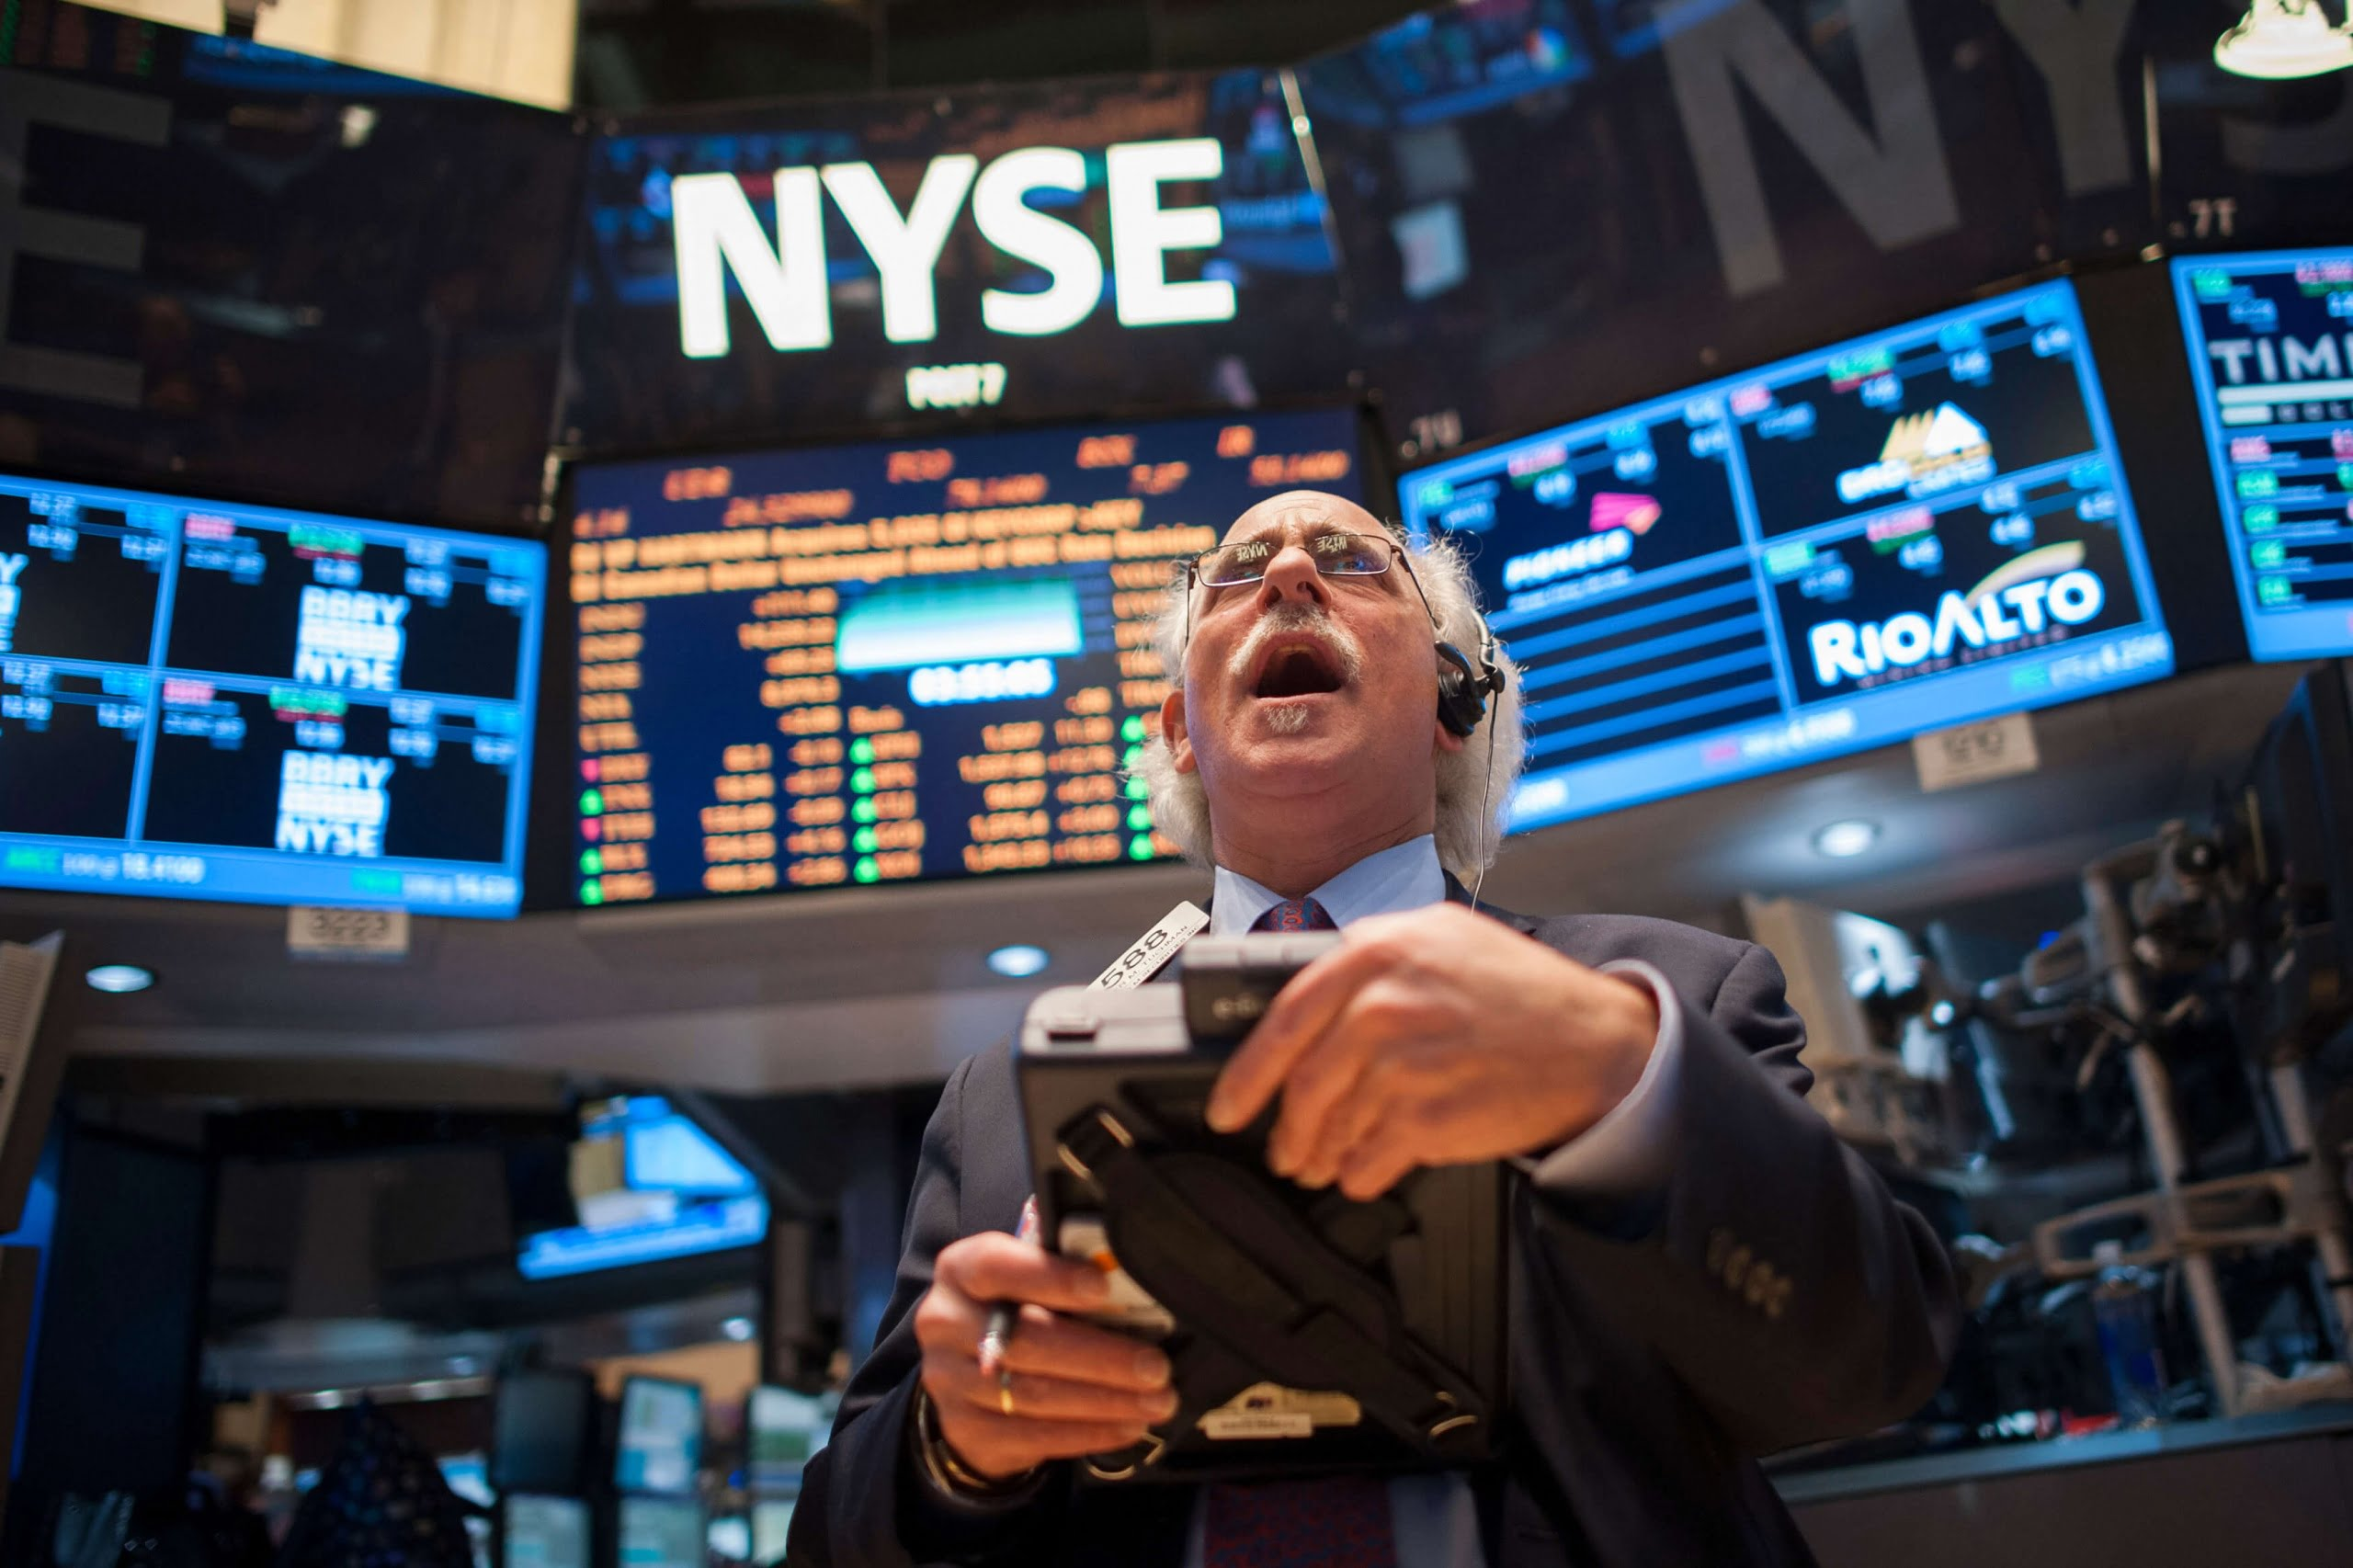 new york stock exchange scaled - The DealMaker